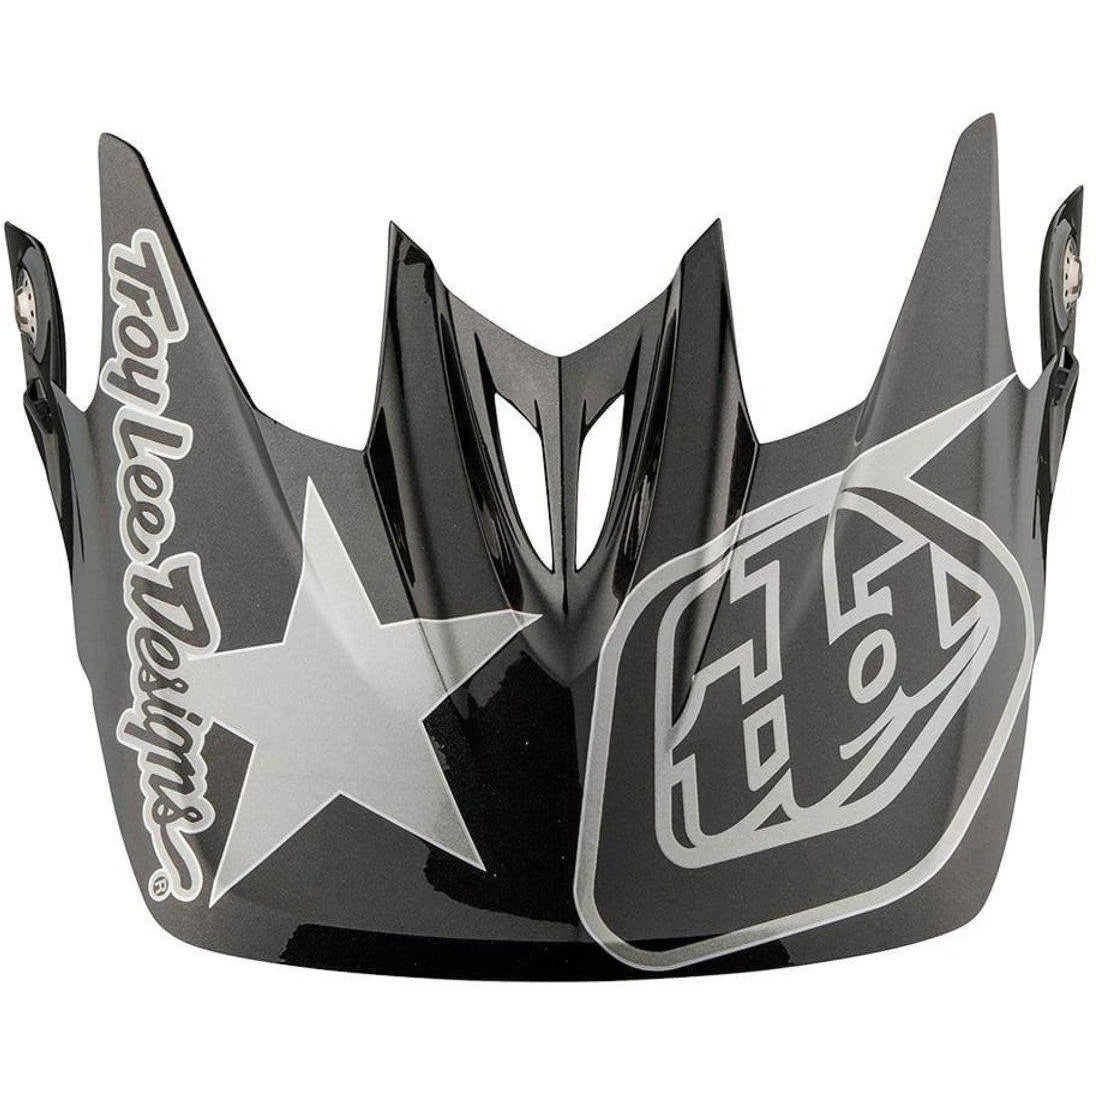 Troy Lee Designs-Troy Lee Designs D3 Helmet Replacement Visor-FREEDOM BLACK/GRAY-D3-TLD157142290-saddleback-elite-performance-cycling